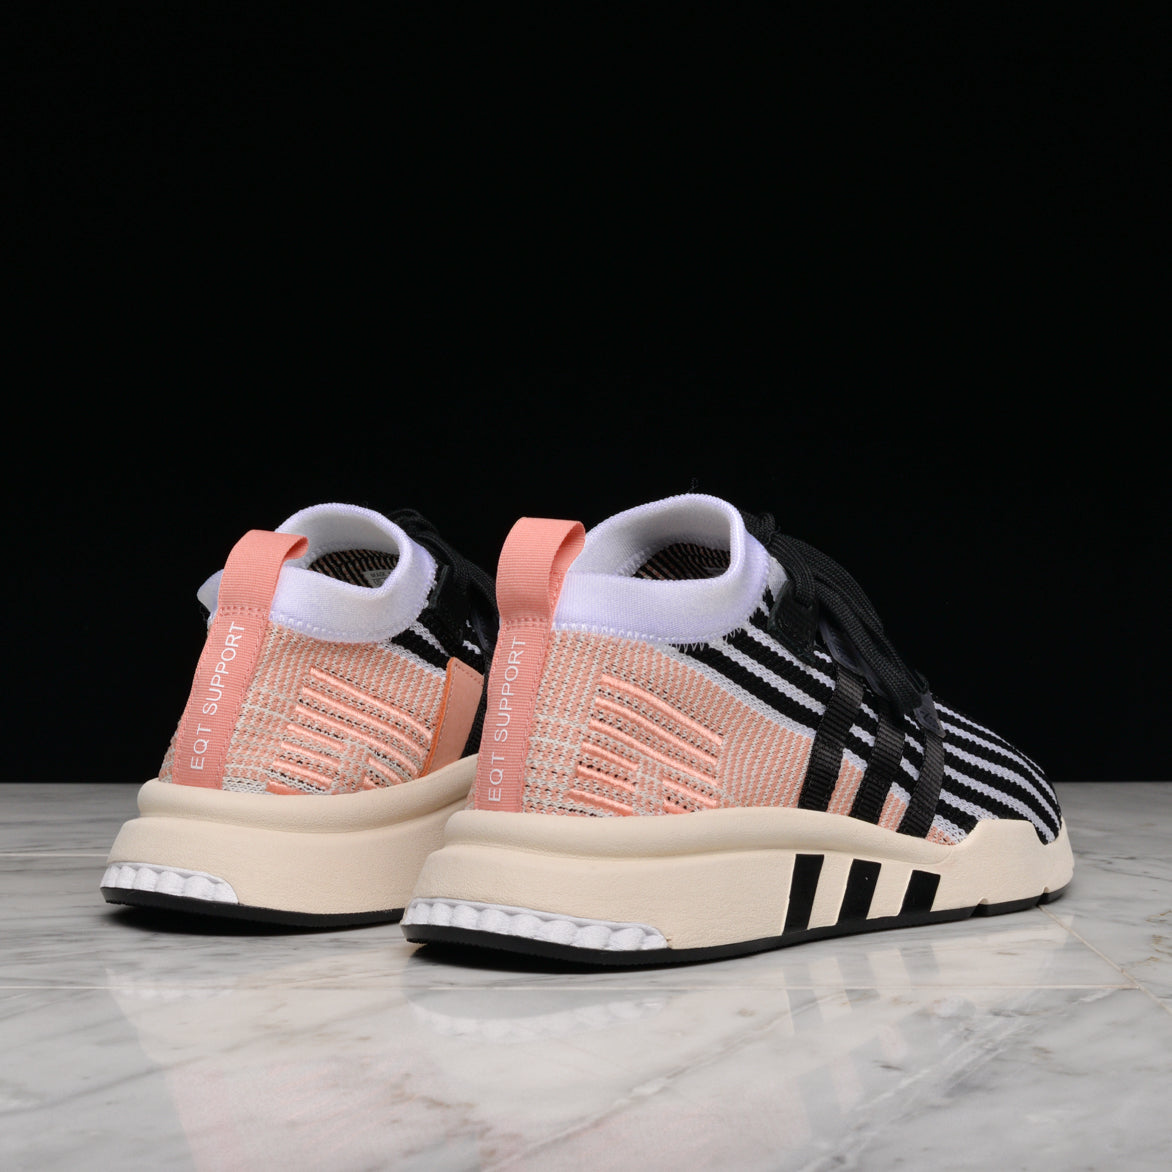 premium selection f931e f83e5 ... EQT SUPPORT MID ADV PK - WHITE  BLACK TRACE PINK ...